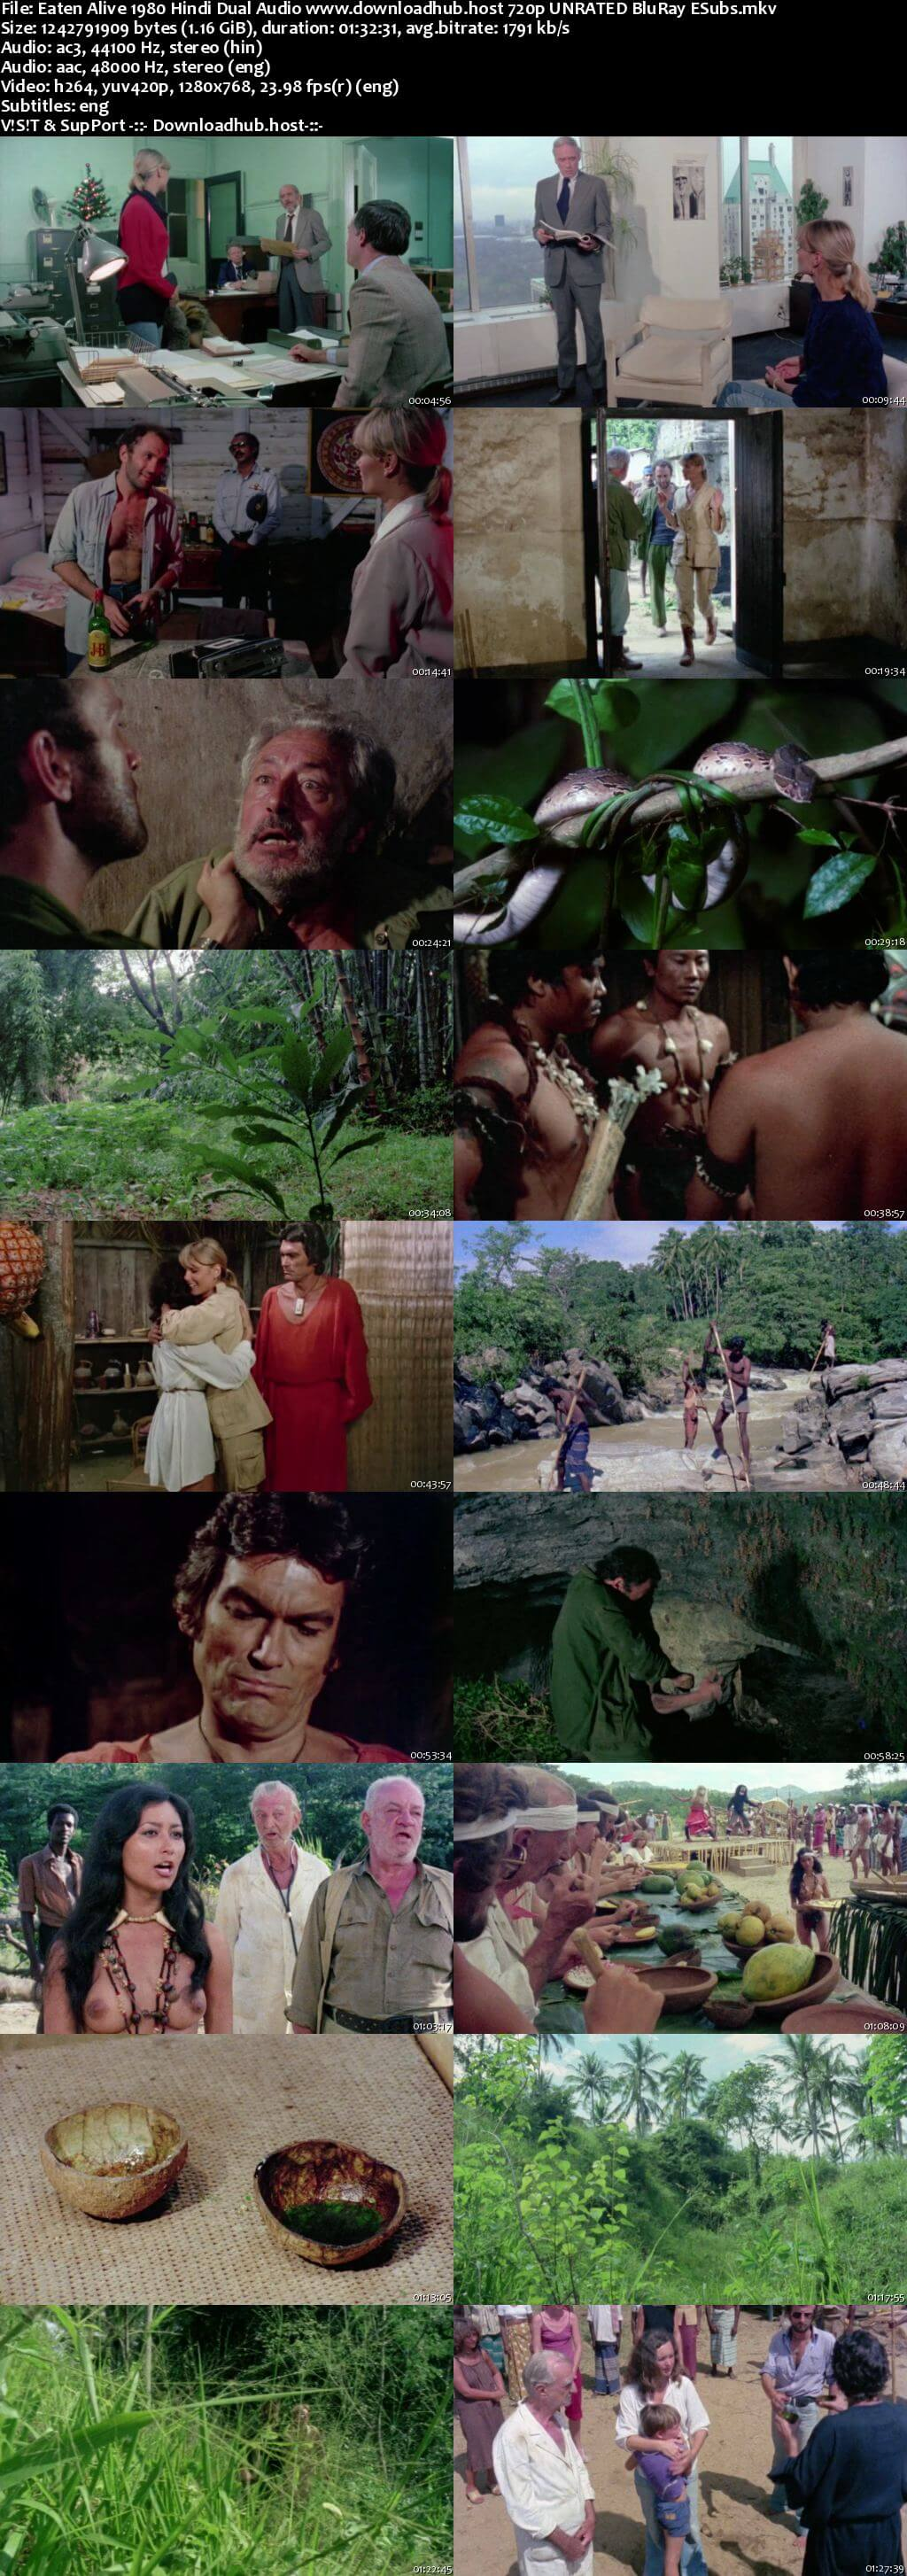 Eaten Alive 1980 Hindi Dual Audio 720p UNRATED BluRay ESubs